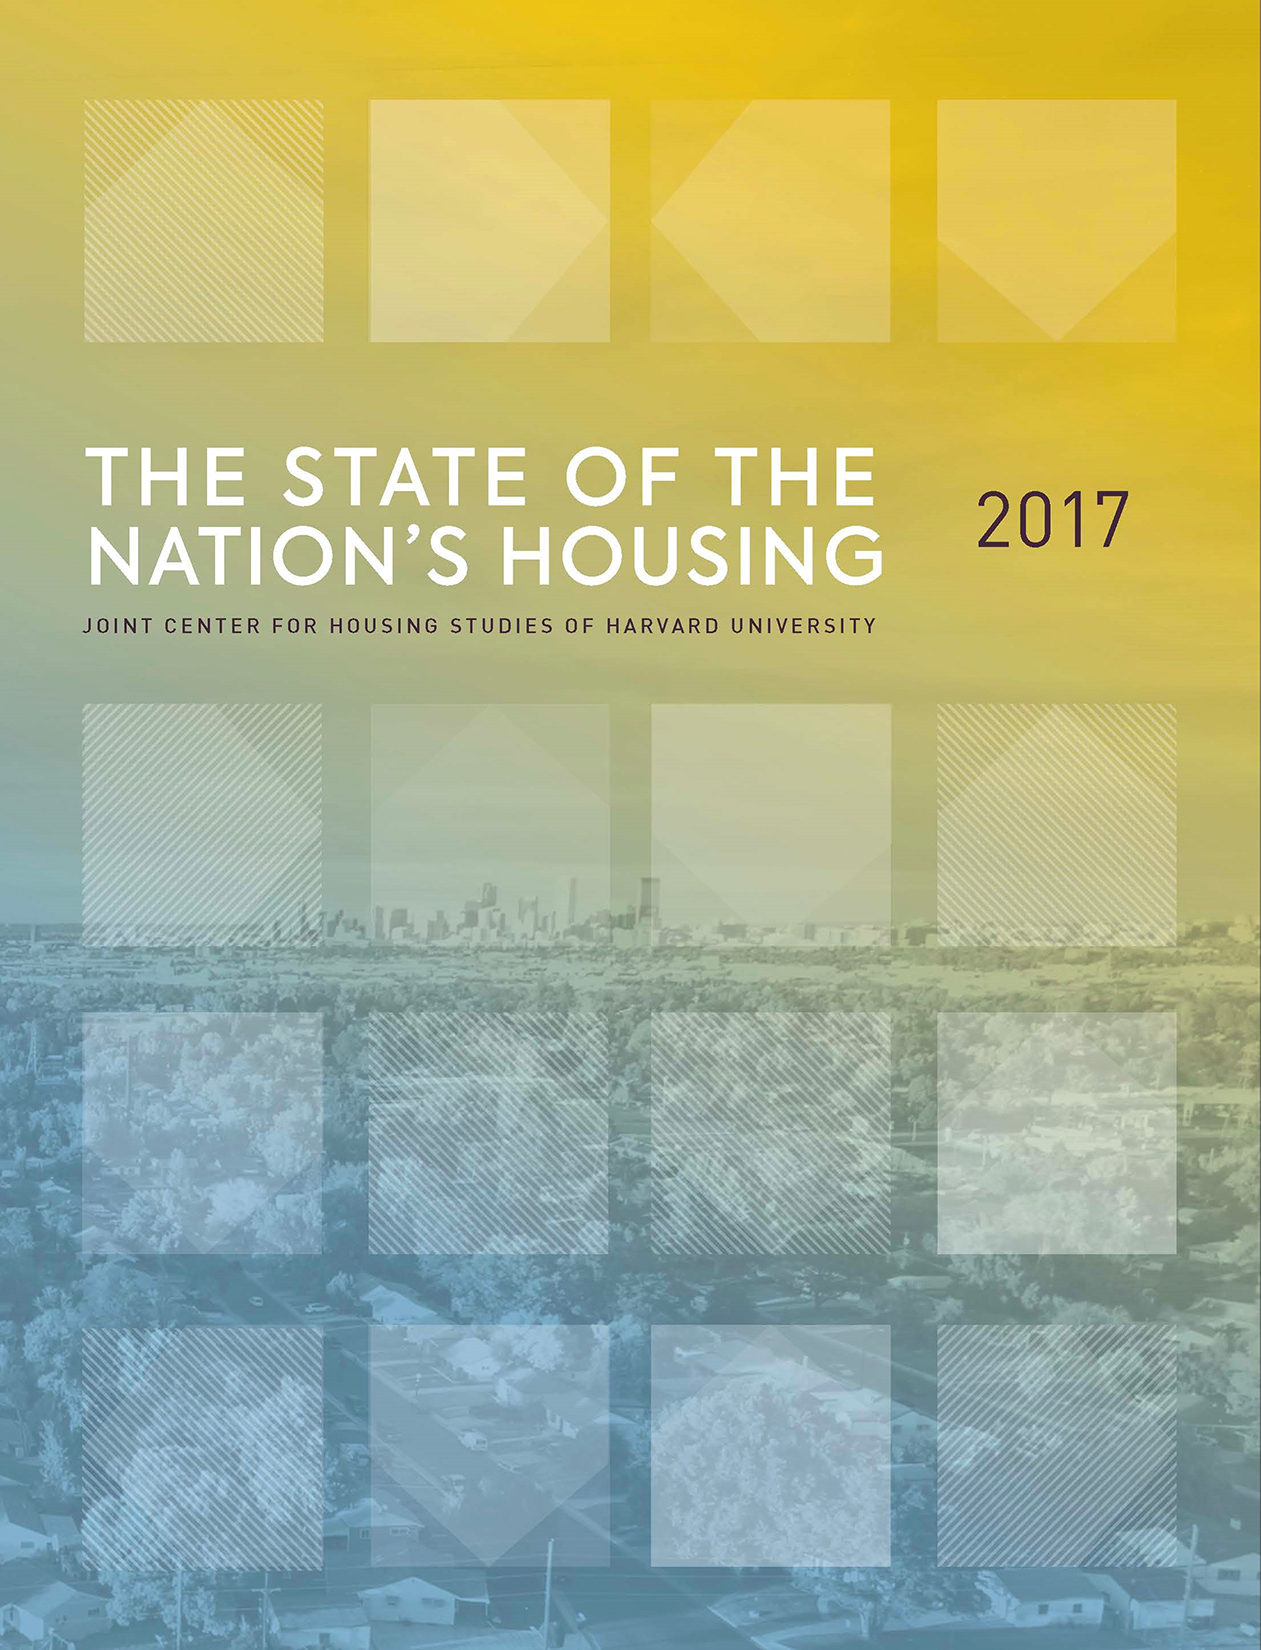 Harvard State of the Nation's Housing 2017 - Report